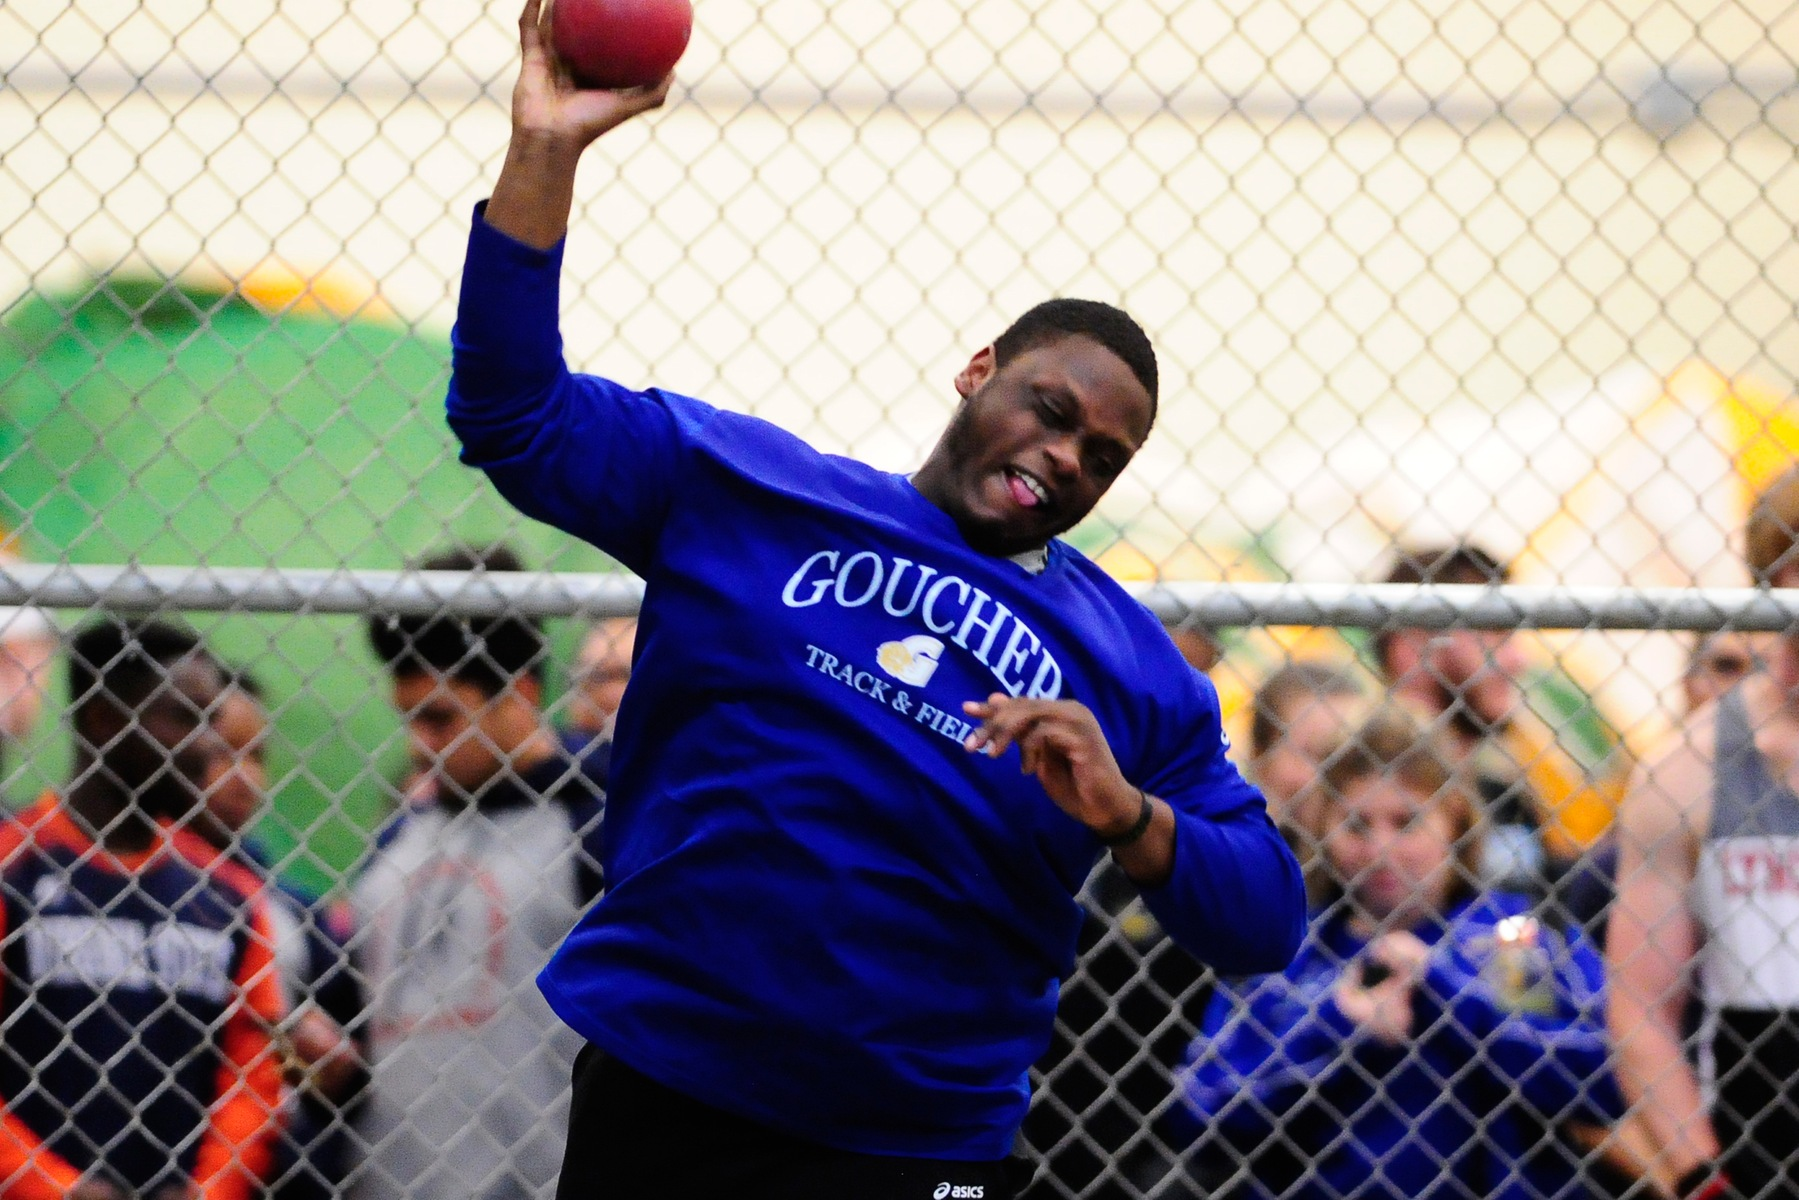 Men's Track & Field Continues Indoor Season at Collegeville Classic